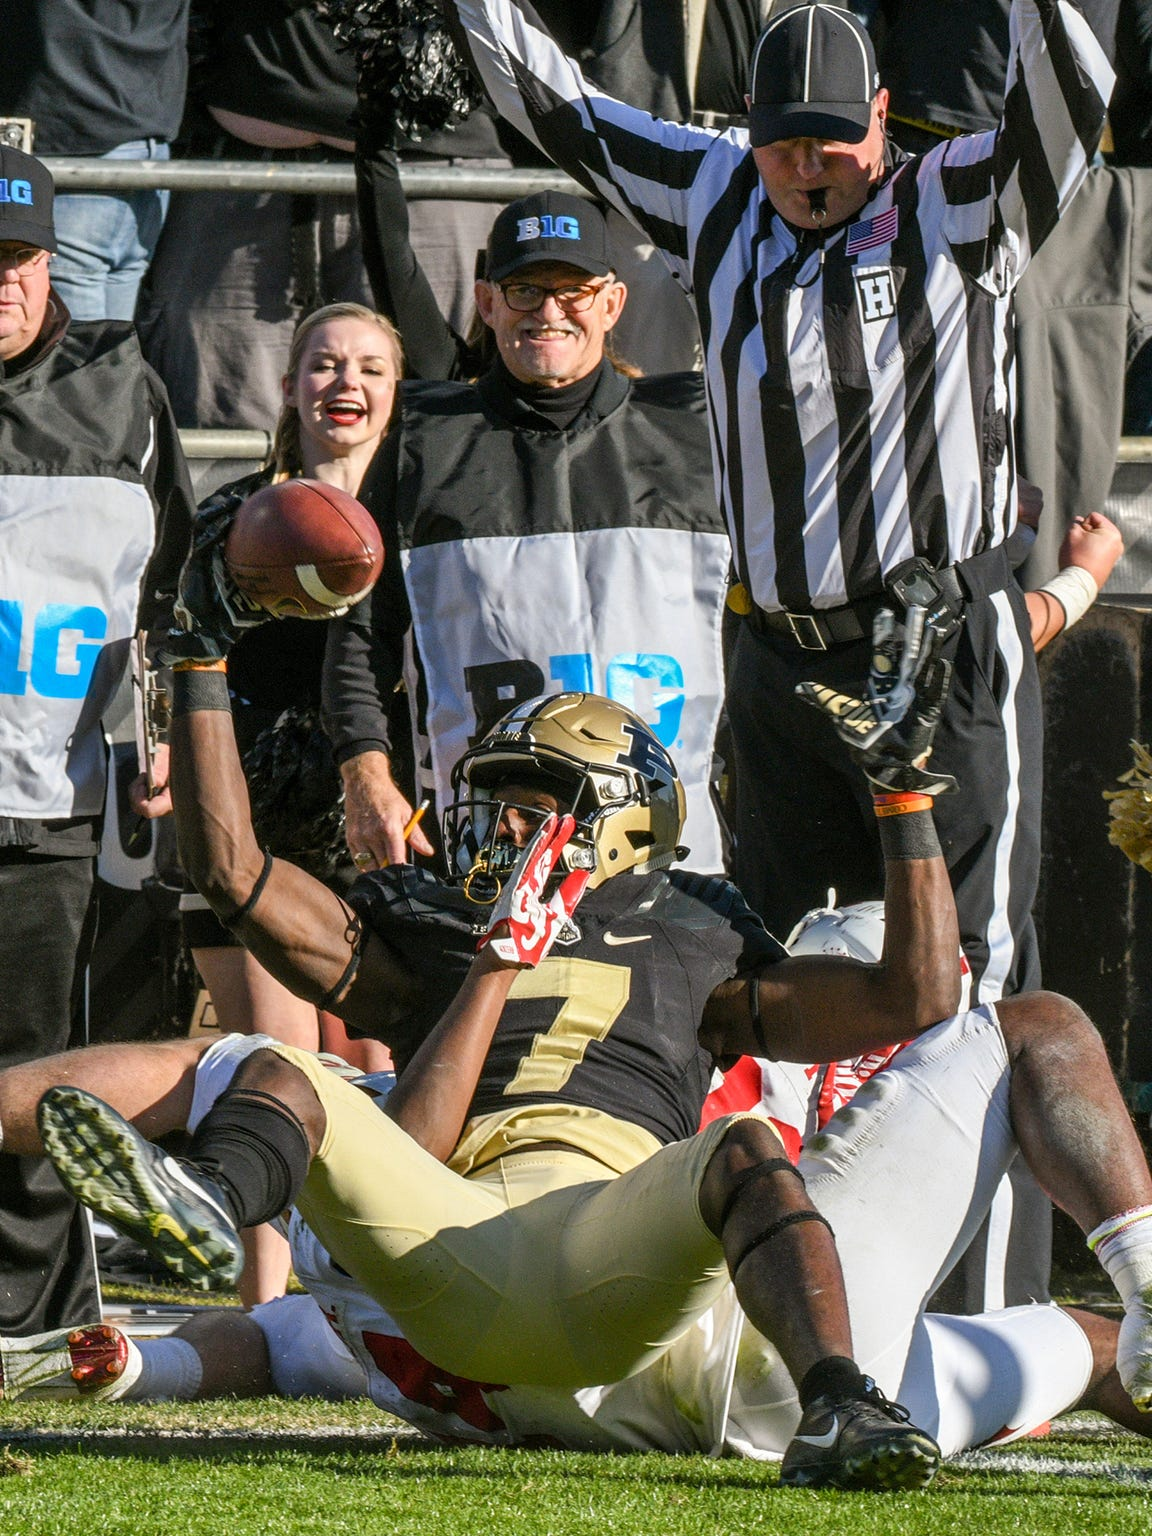 Isaac Zico of Purdue with a second half touchdown reception